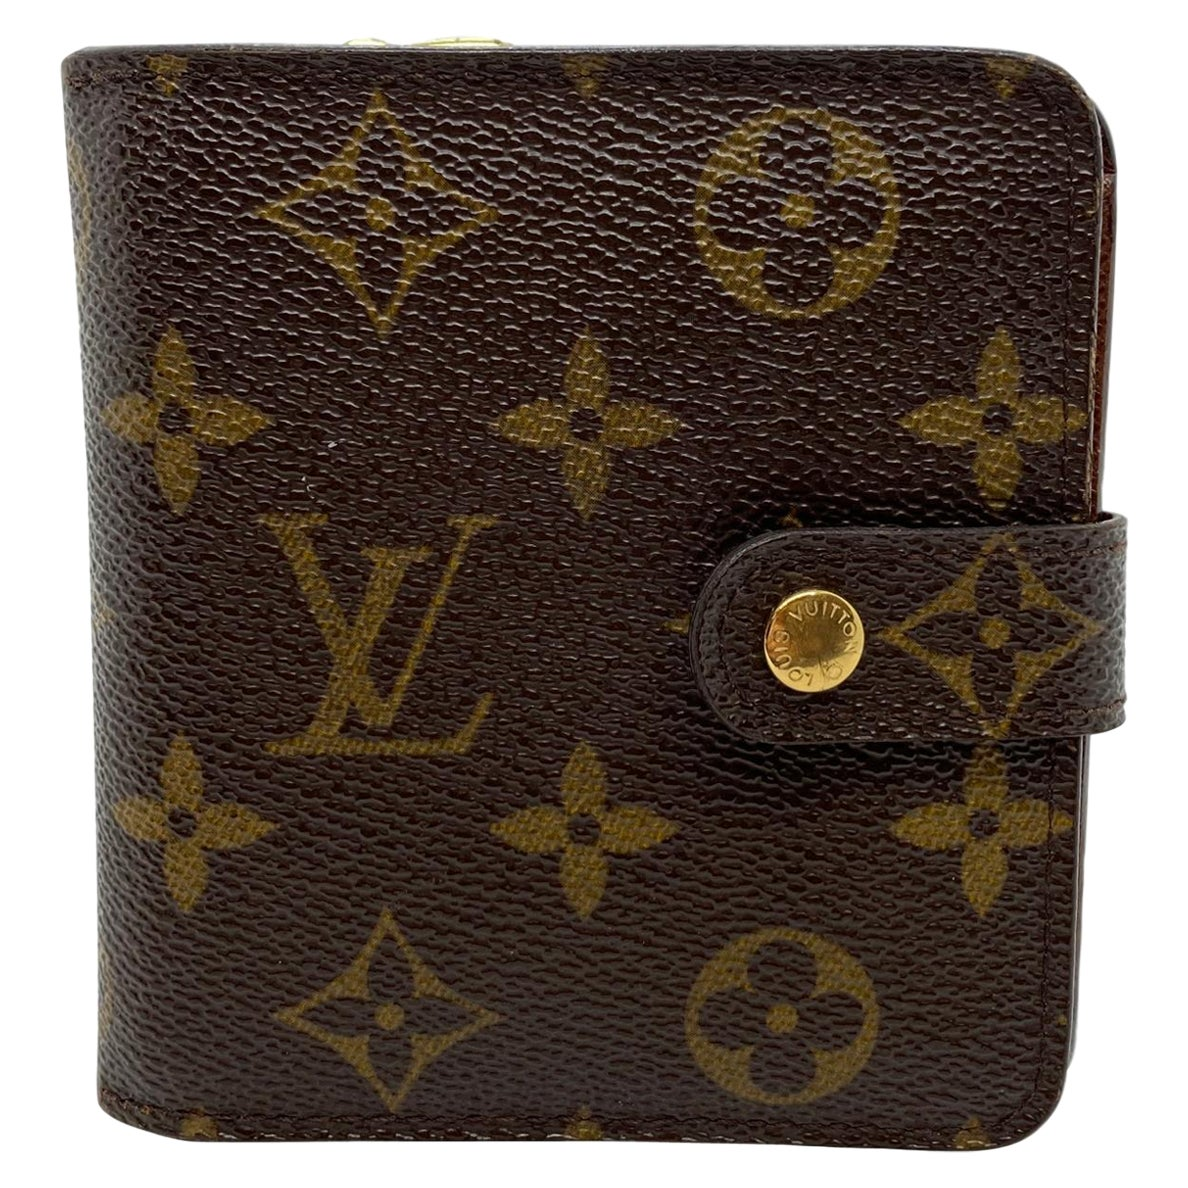 Louis Vuitton Compact Zip Monogram PM French Wallet, Spain 2005.